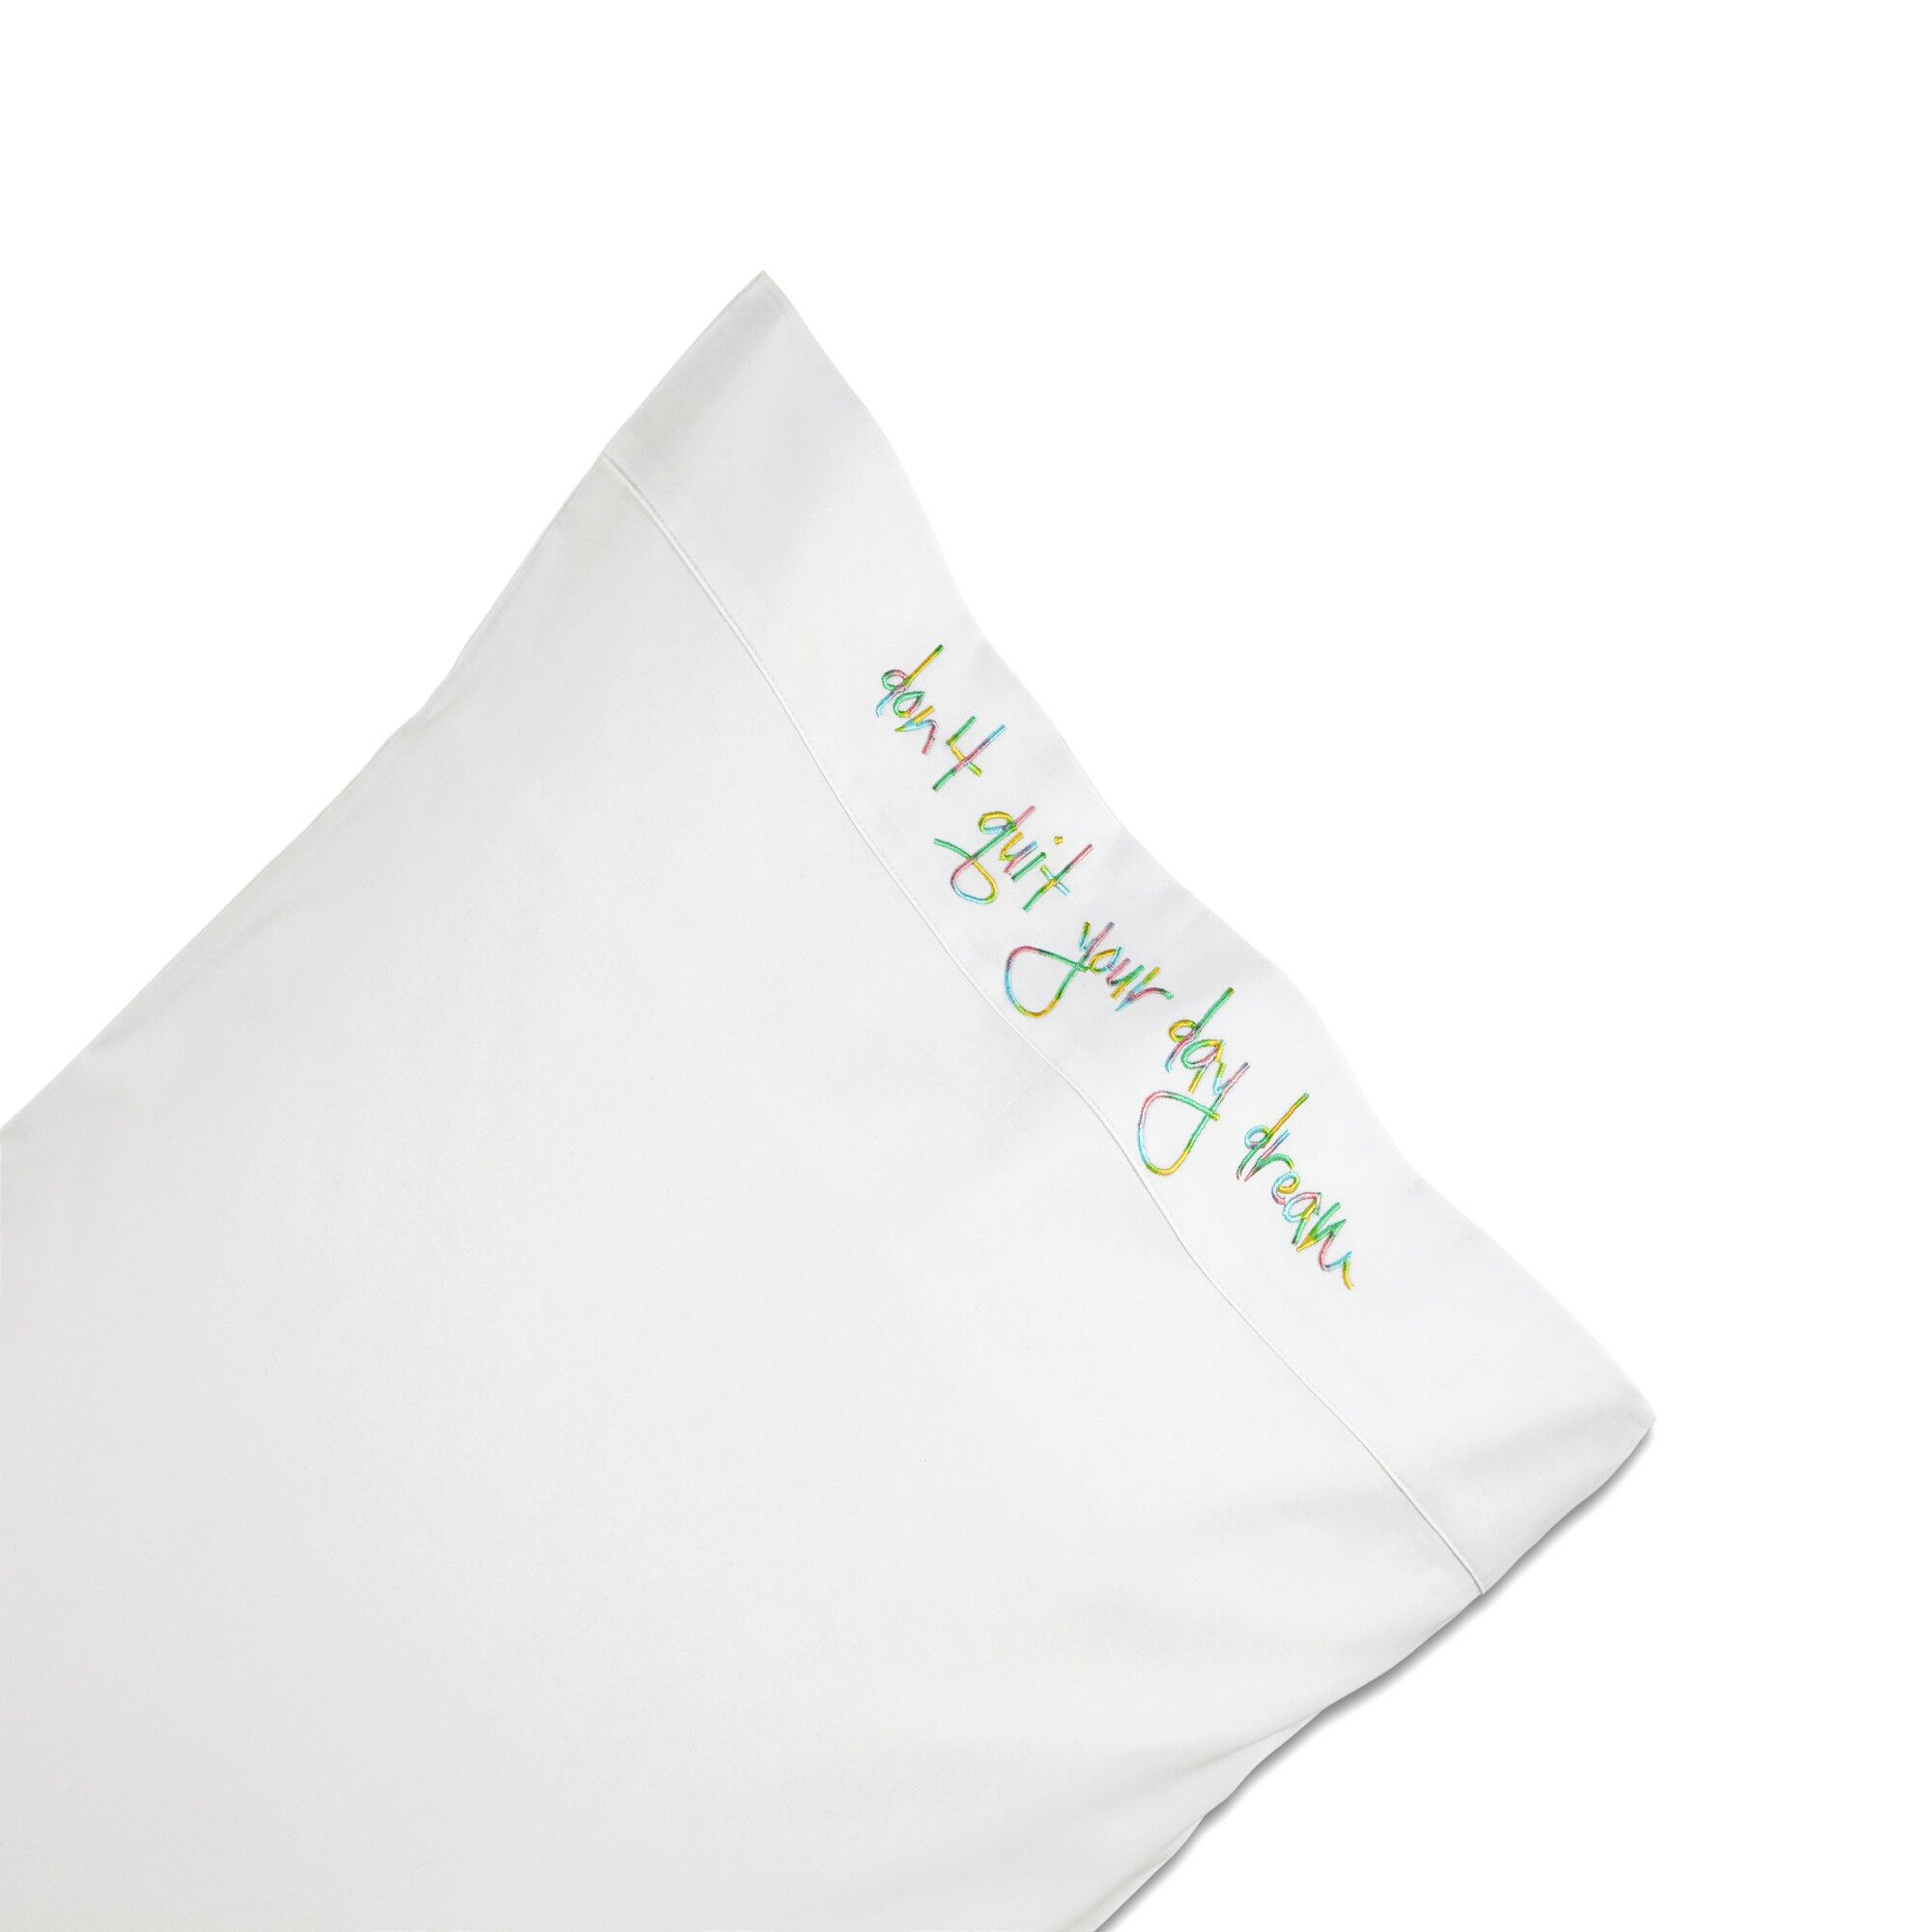 Marlin Quit Your Day Dream Pillowcase